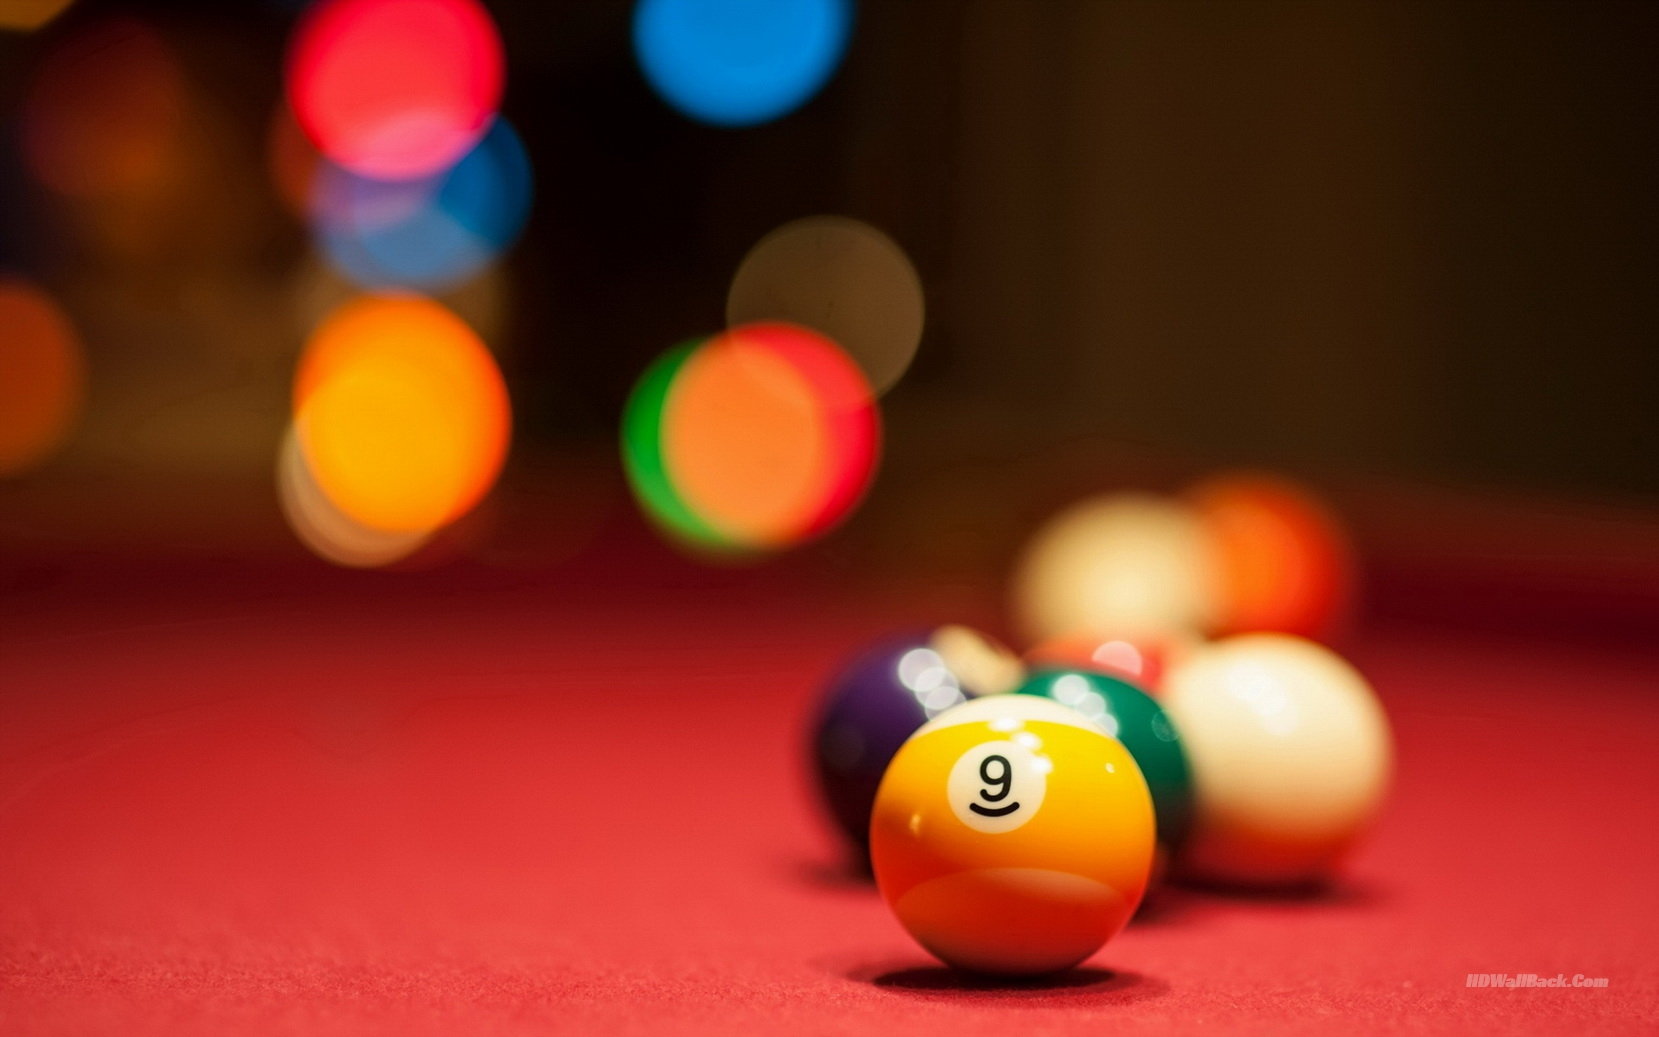 Billiards Balls Hd Pictures and Images